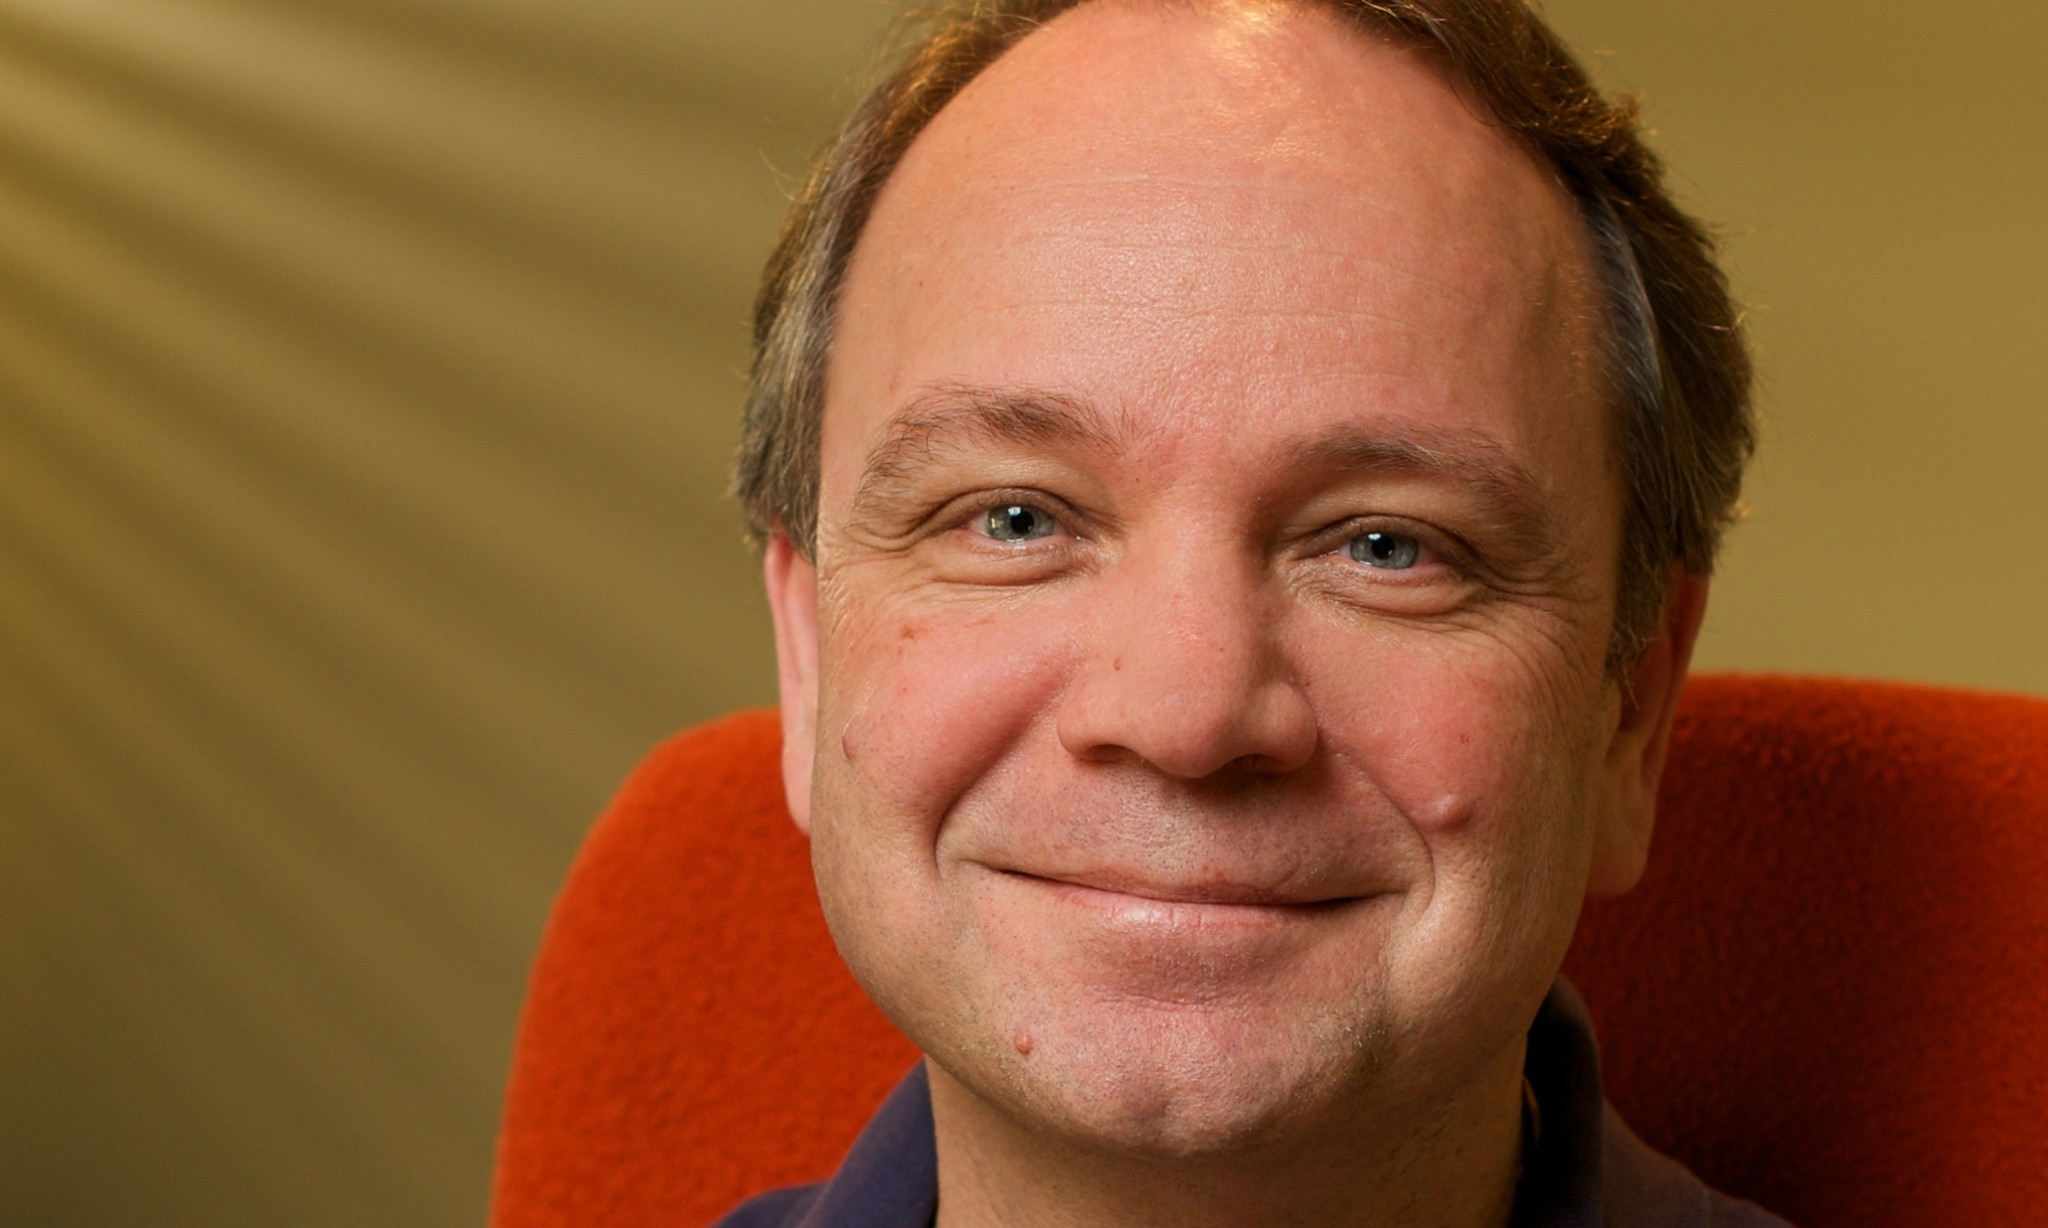 Sid Meier interview: 'Learning is part of any good video game'